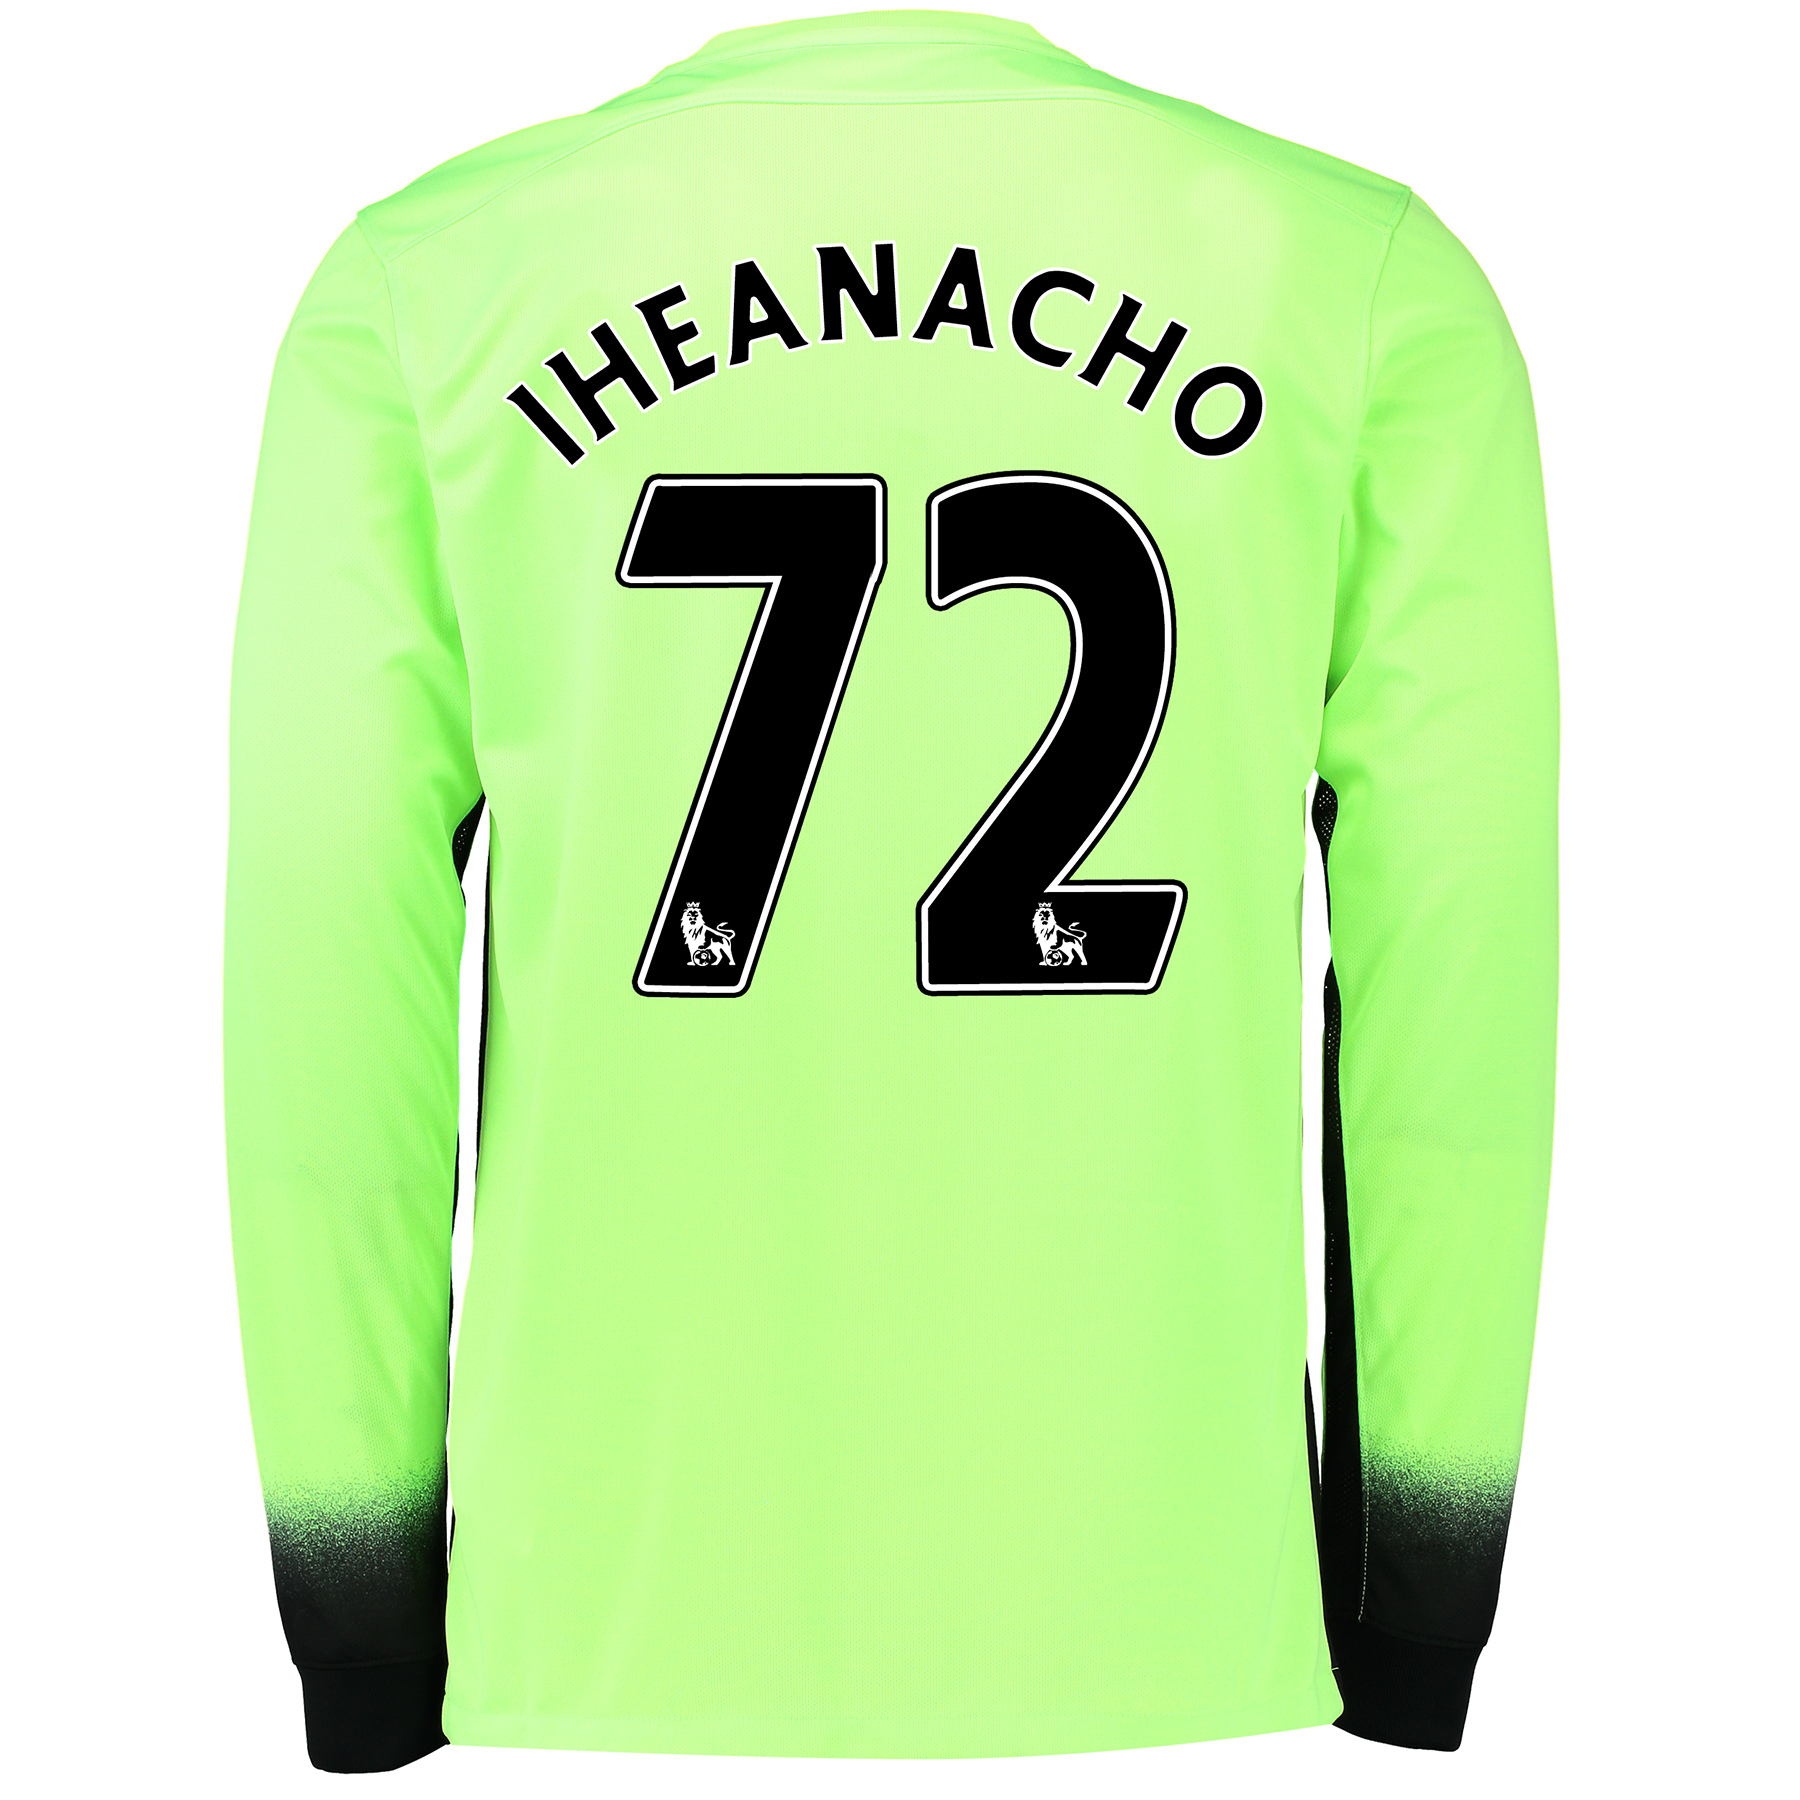 Manchester City 3rd Shirt 2015/16 - Long Sleeve Green with Iheanacho 7